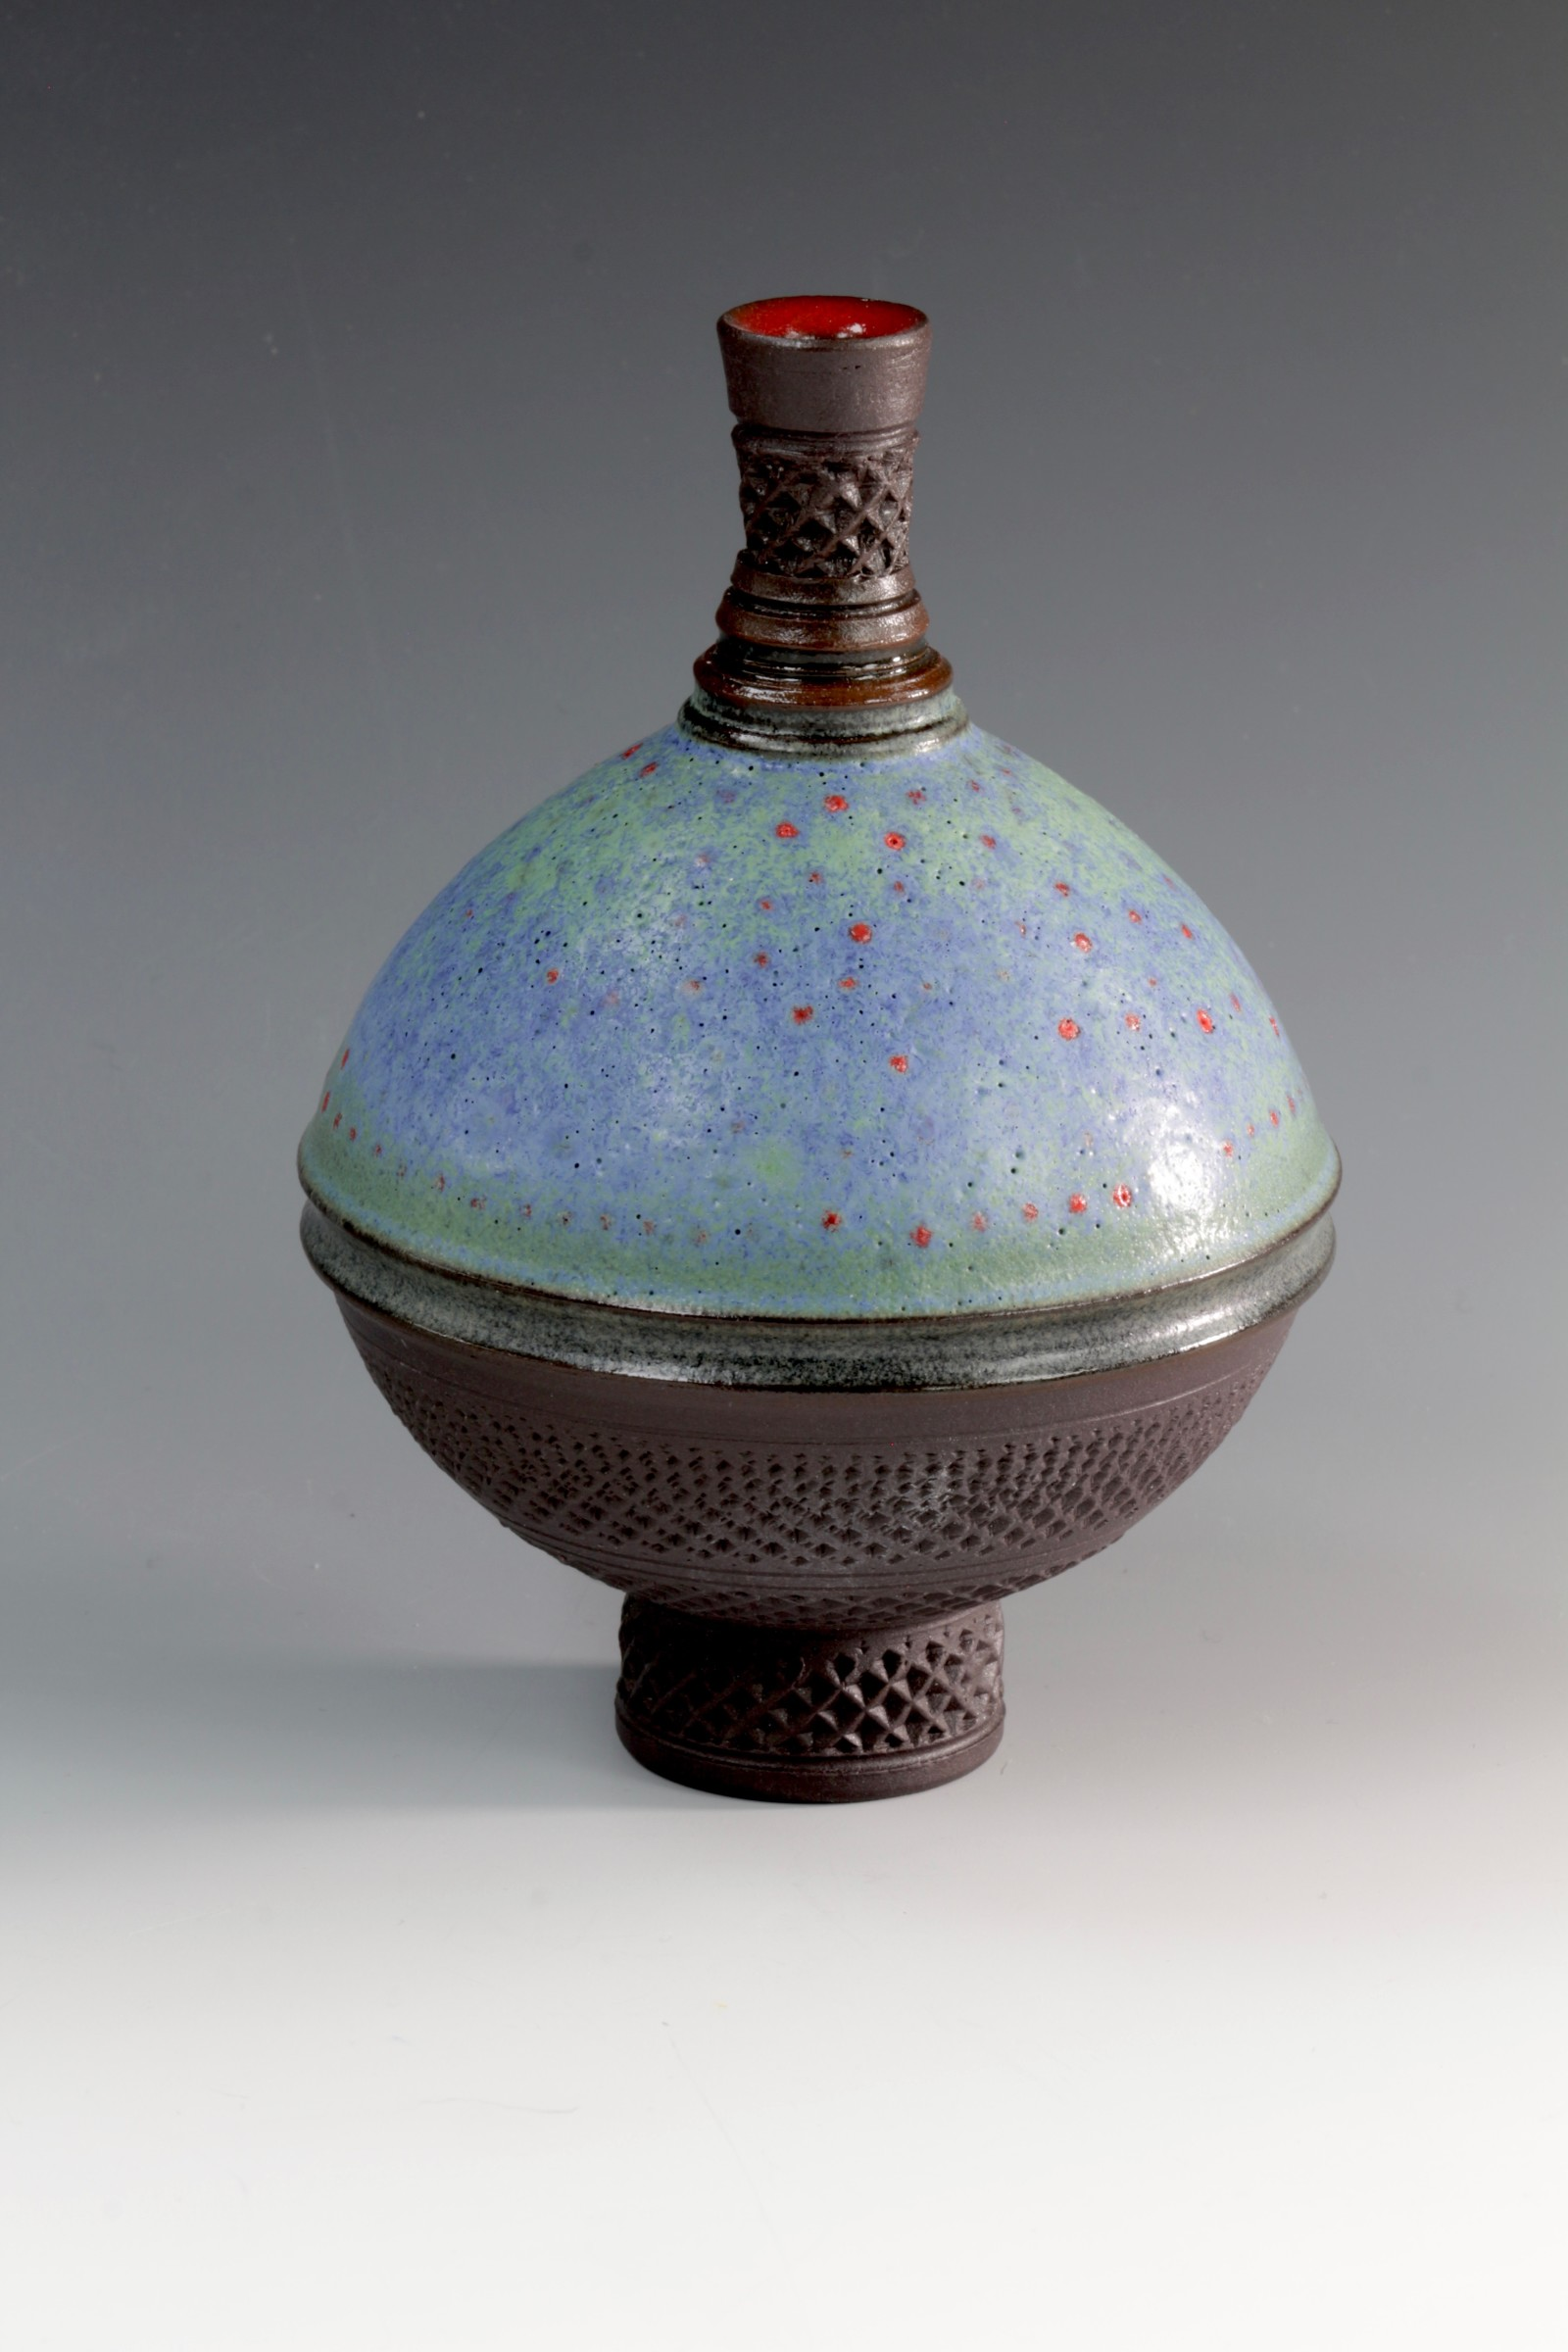 "<span class=""link fancybox-details-link""><a href=""/artists/61-geoffrey-swindell/works/6902-geoffrey-swindell-bud-vase-2020/"">View Detail Page</a></span><div class=""artist""><strong>Geoffrey Swindell</strong></div> b. 1945 <div class=""title""><em>Bud Vase</em>, 2020</div> <div class=""signed_and_dated"">impressed artist's seal to base</div> <div class=""medium"">porcelain</div><div class=""copyright_line"">Own Art: £ 17 x 10 Months, 0% APR</div>"